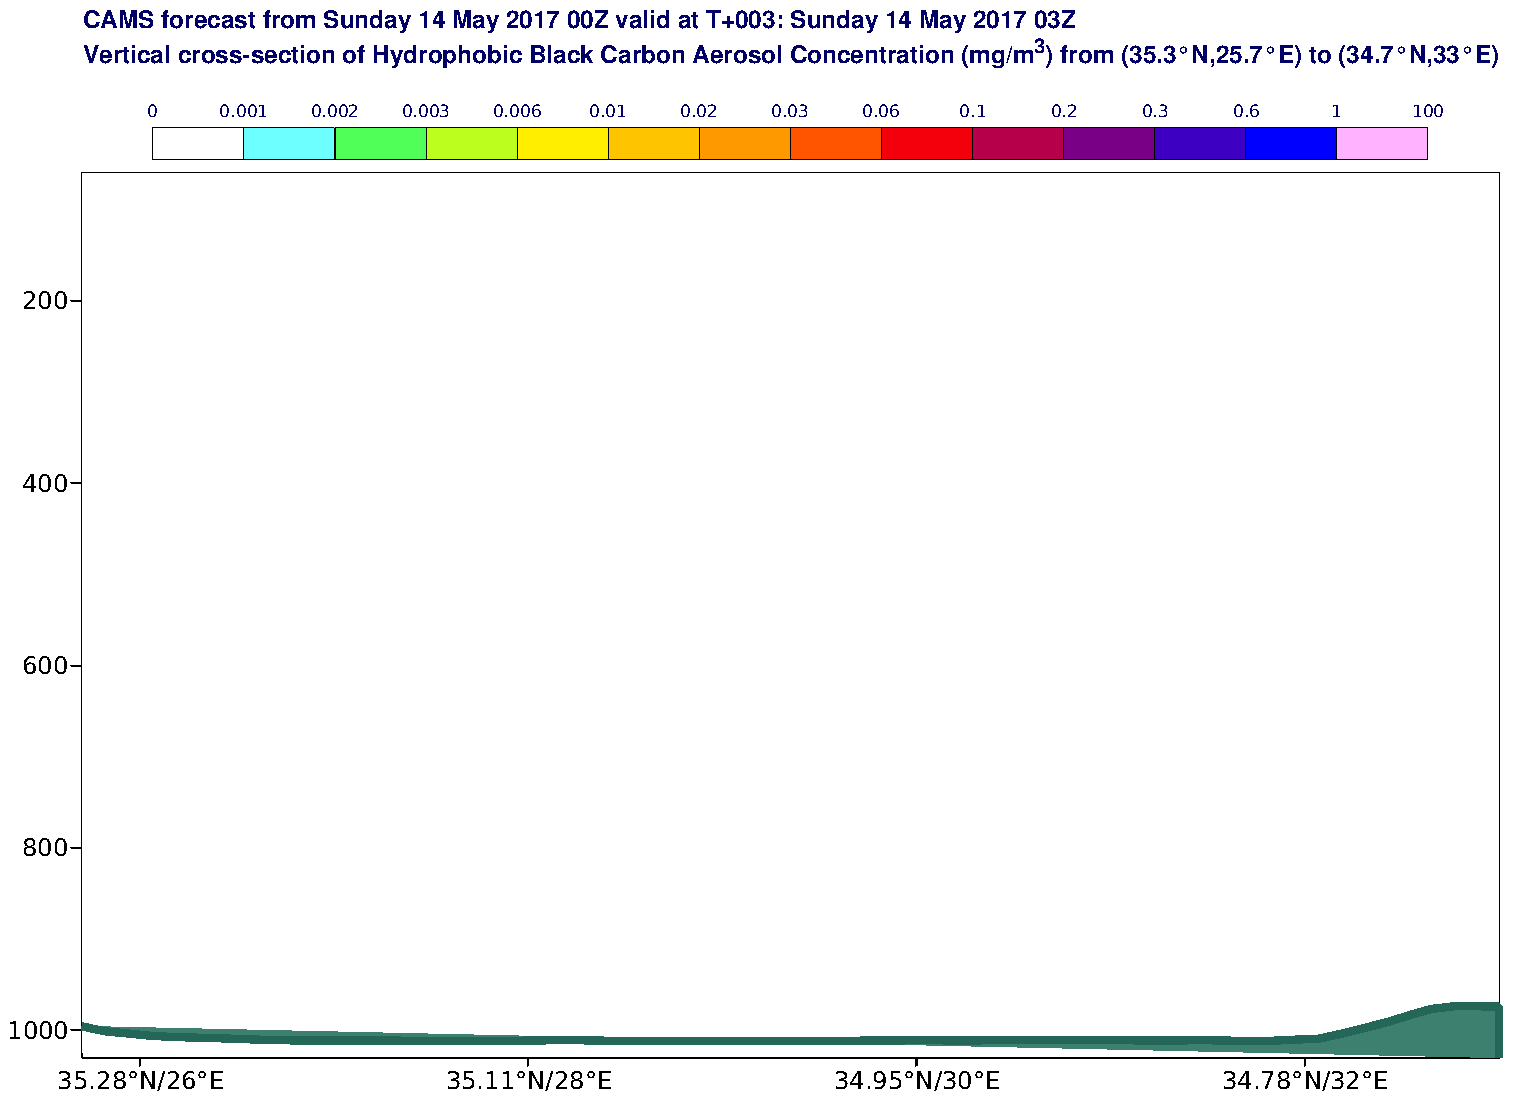 Vertical cross-section of Hydrophobic Black Carbon Aerosol Concentration (mg/m3) valid at T3 - 2017-05-14 03:00